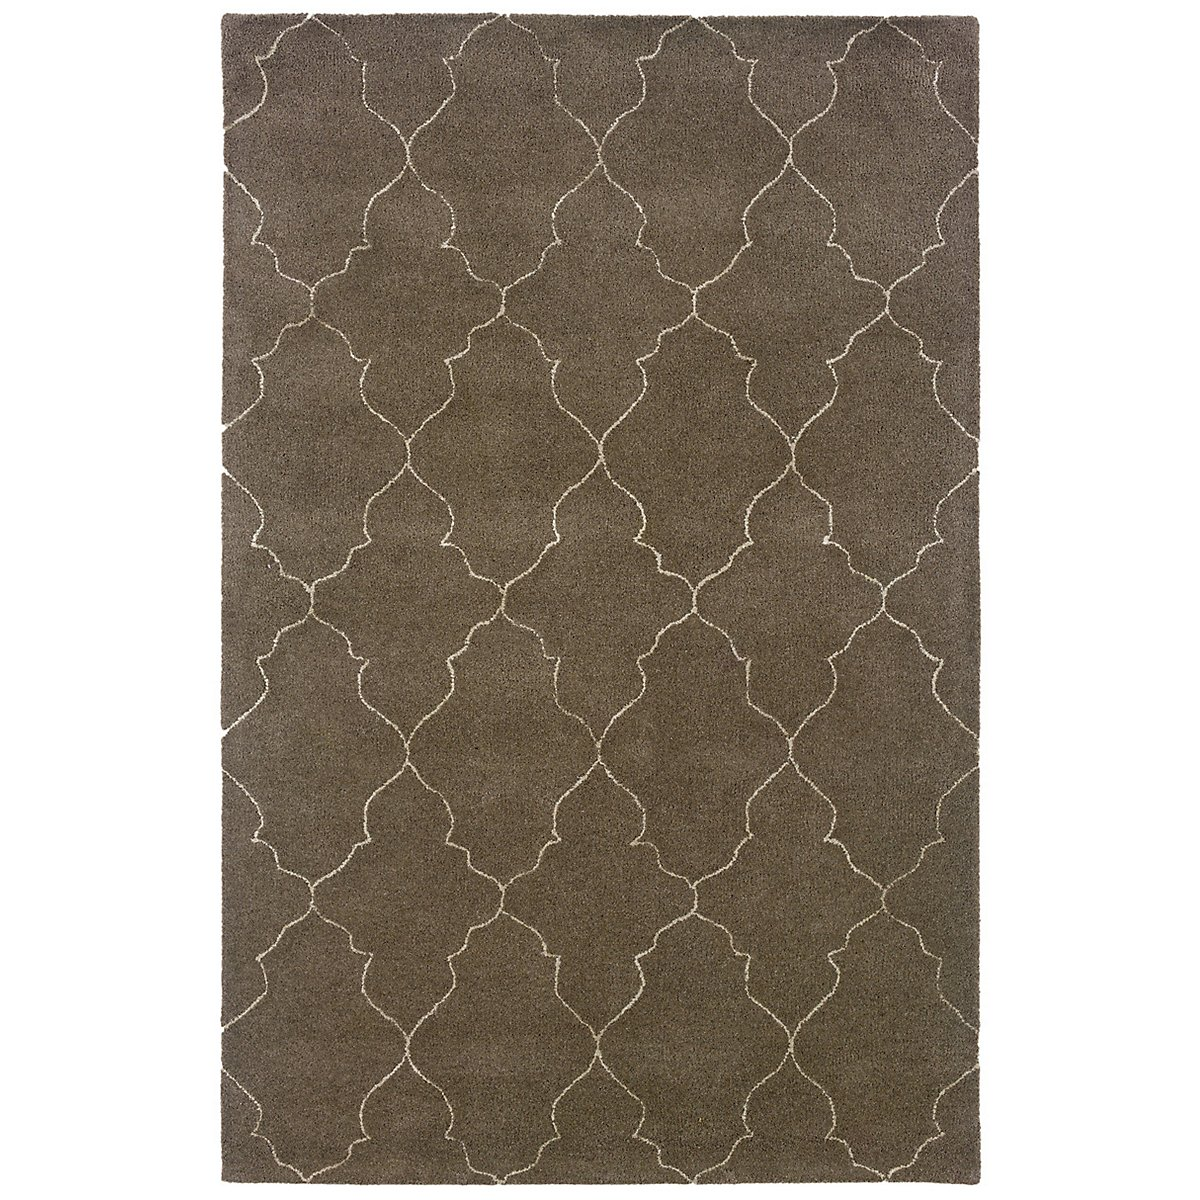 Asha Dark Brown 8X10 Area Rug